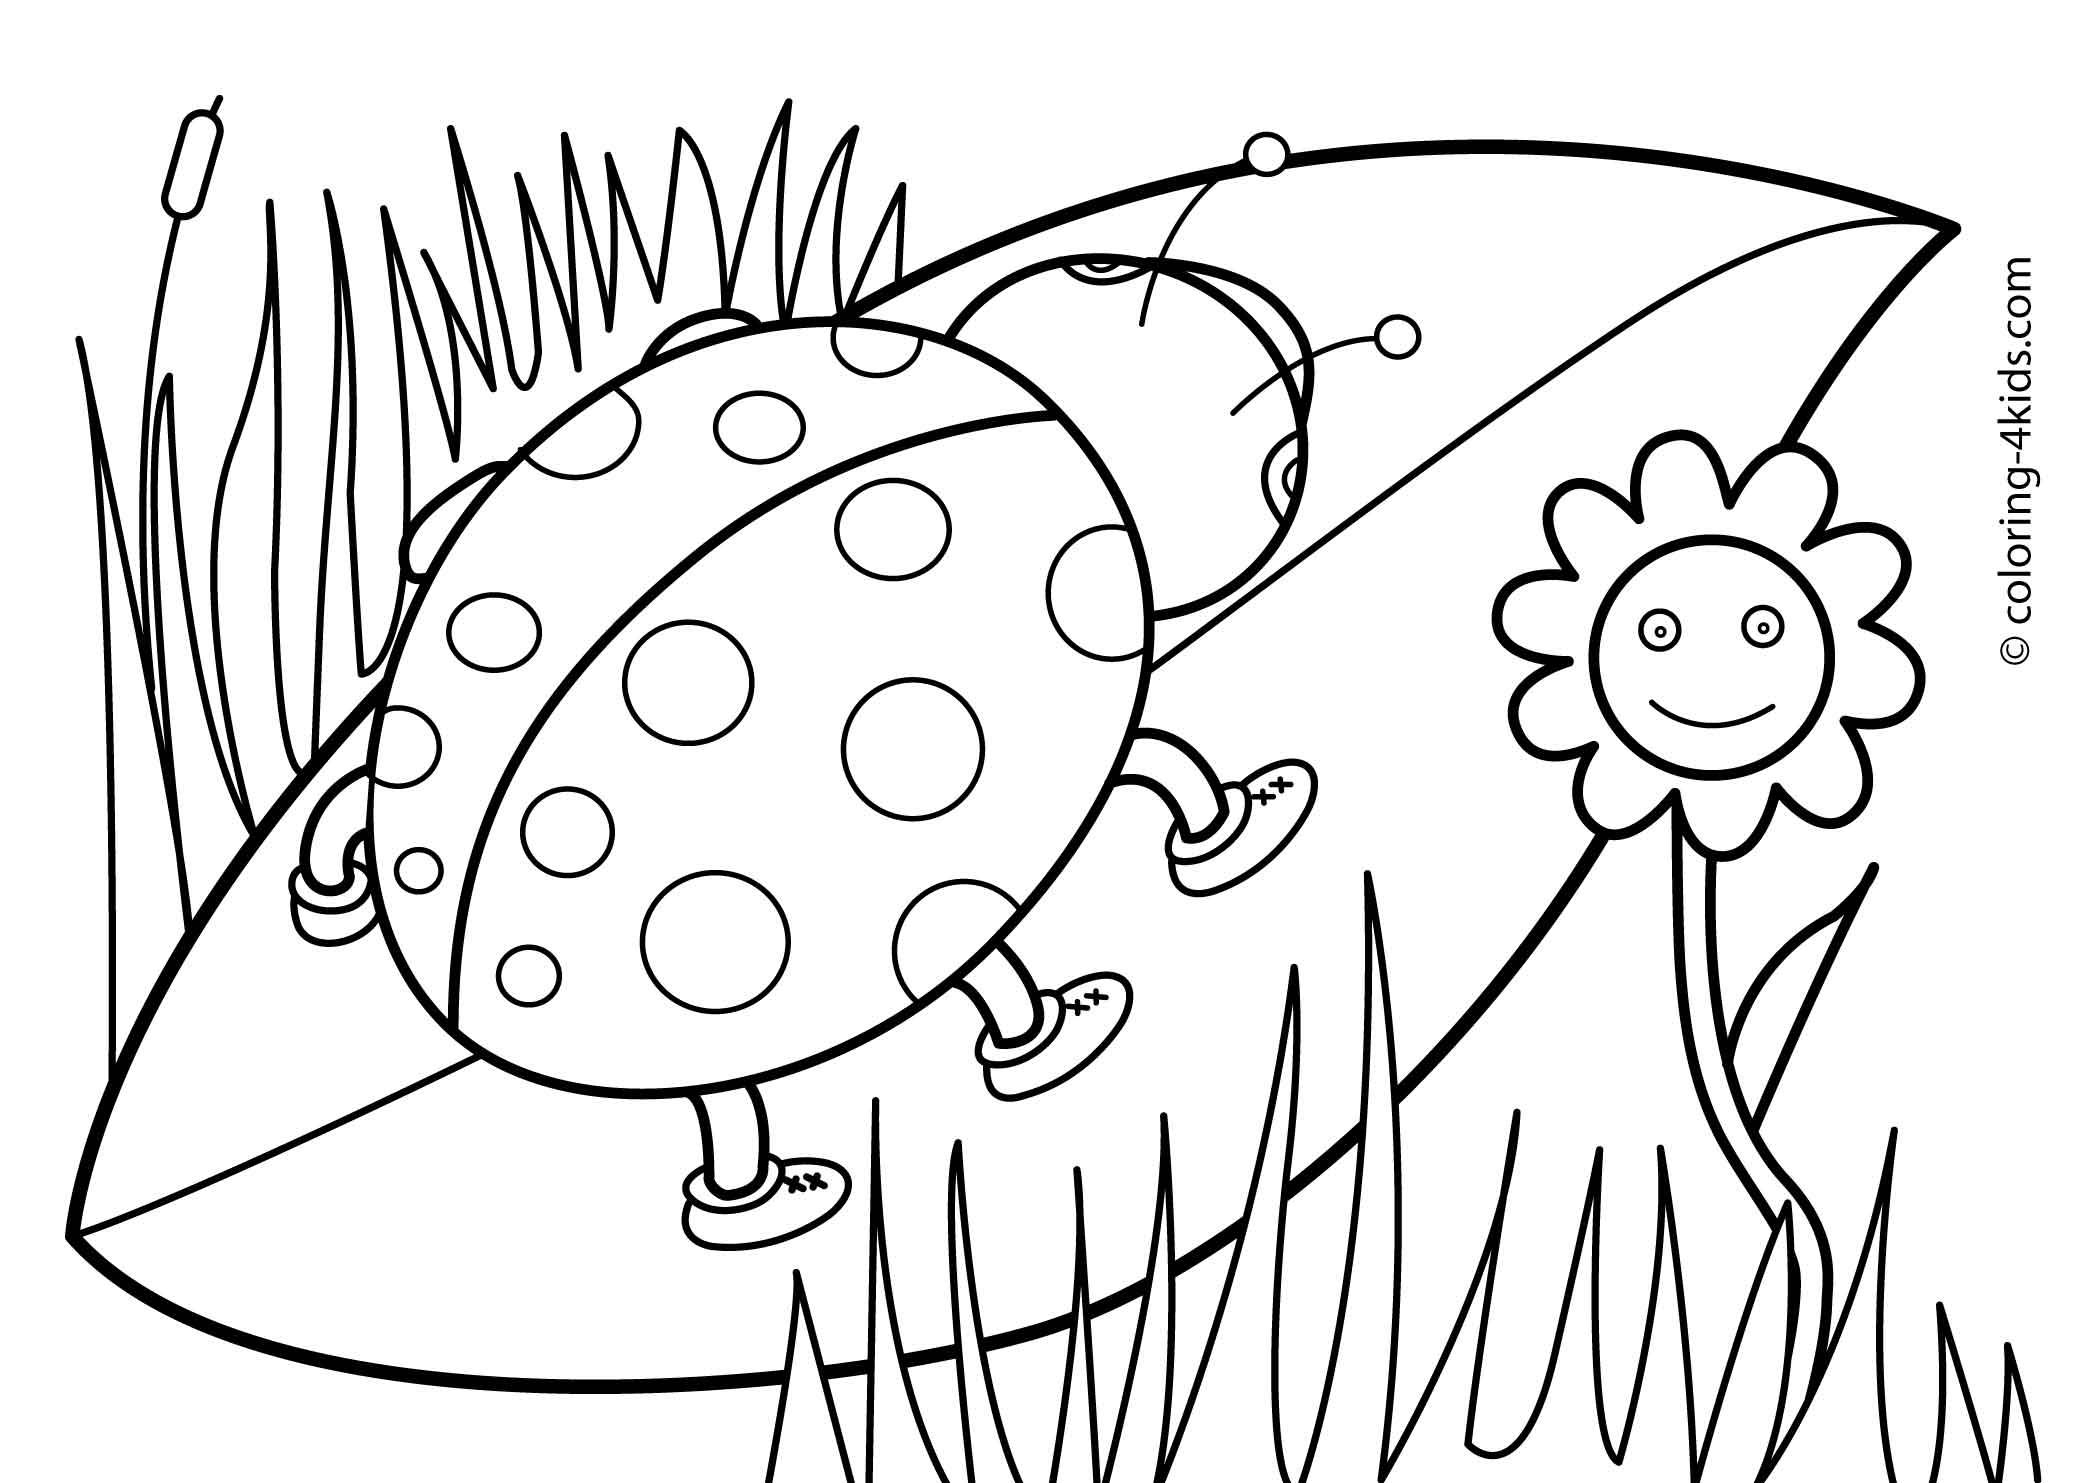 free printable spring coloring pages - 20